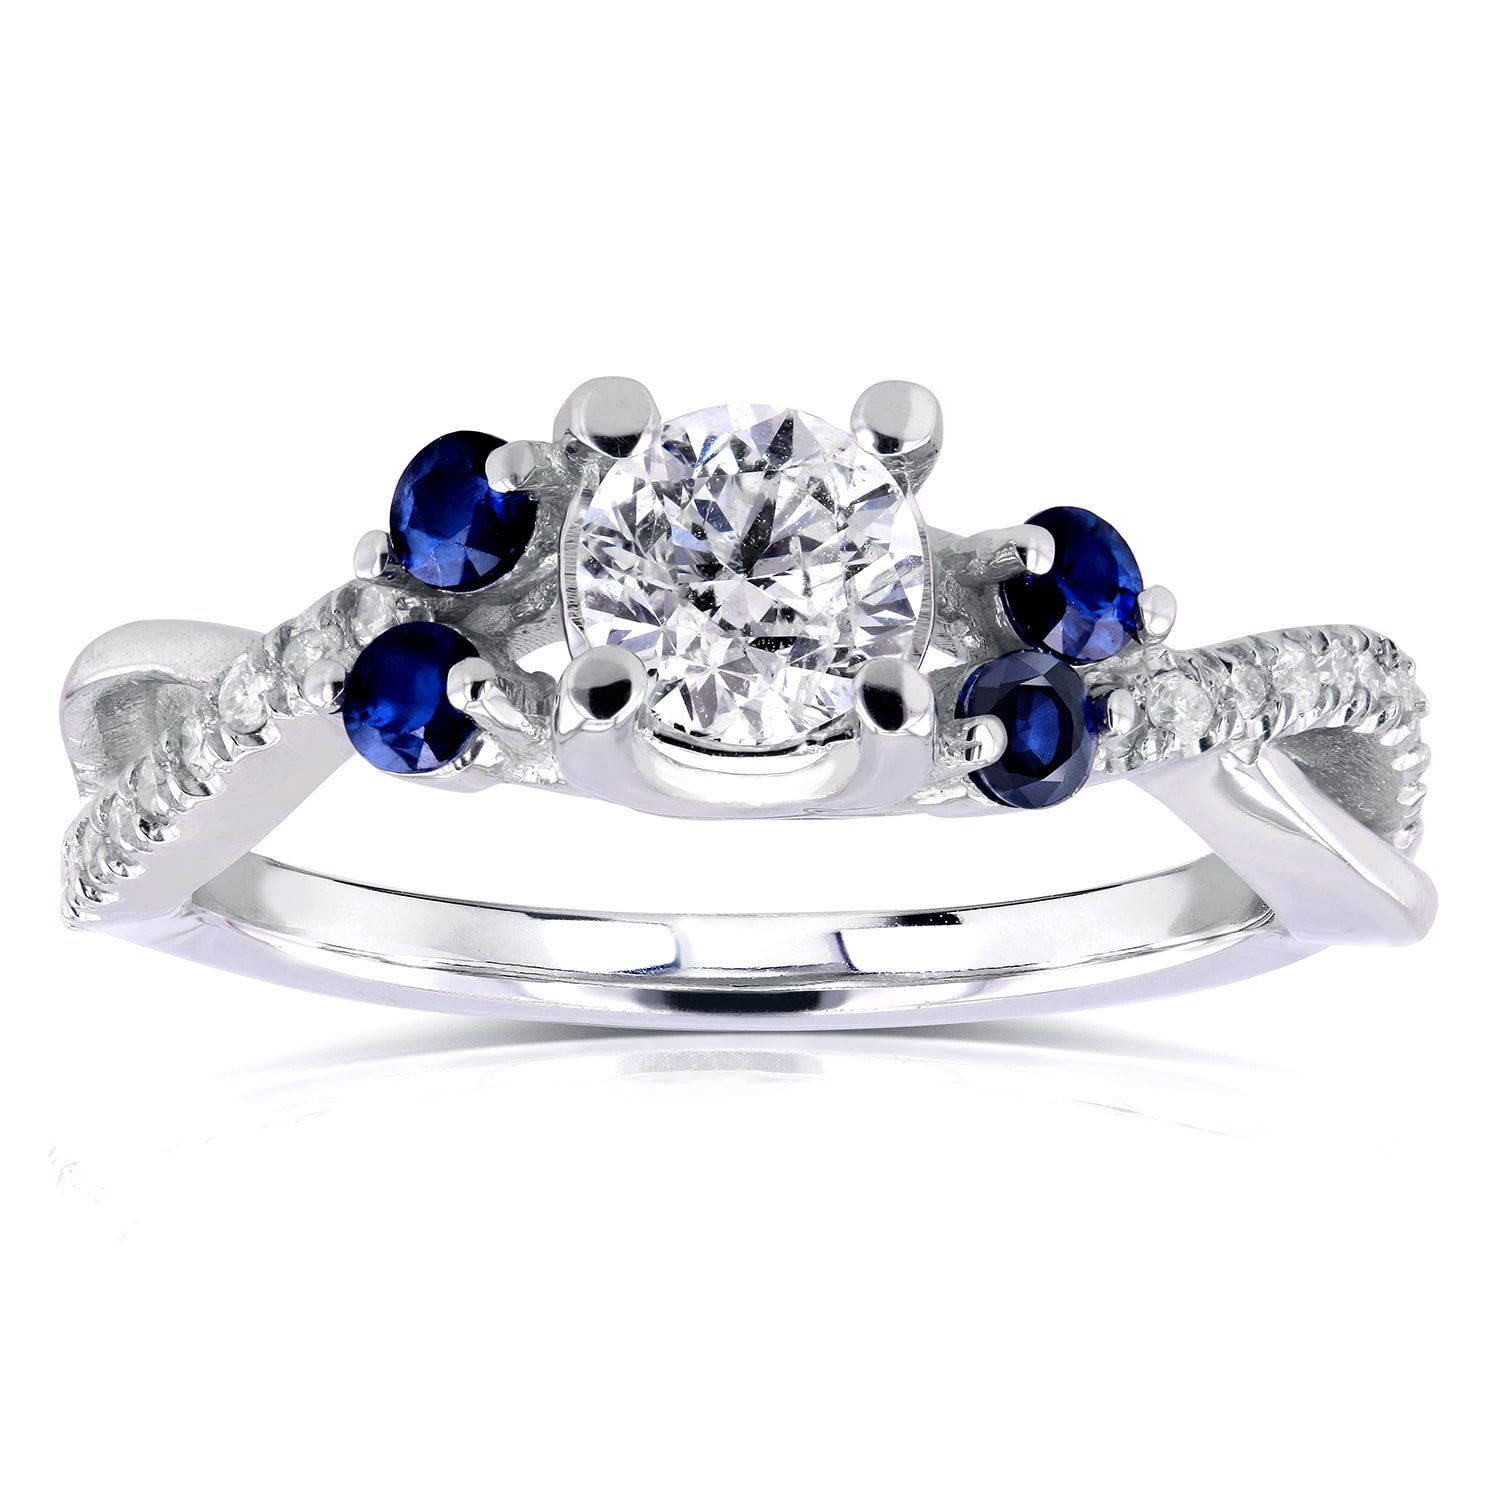 solitaire trendy celebrity products cocktail zirconia blue princess sapphire ring beloved nadine cut cubic silver cz diamond carat faux fashion sparkles